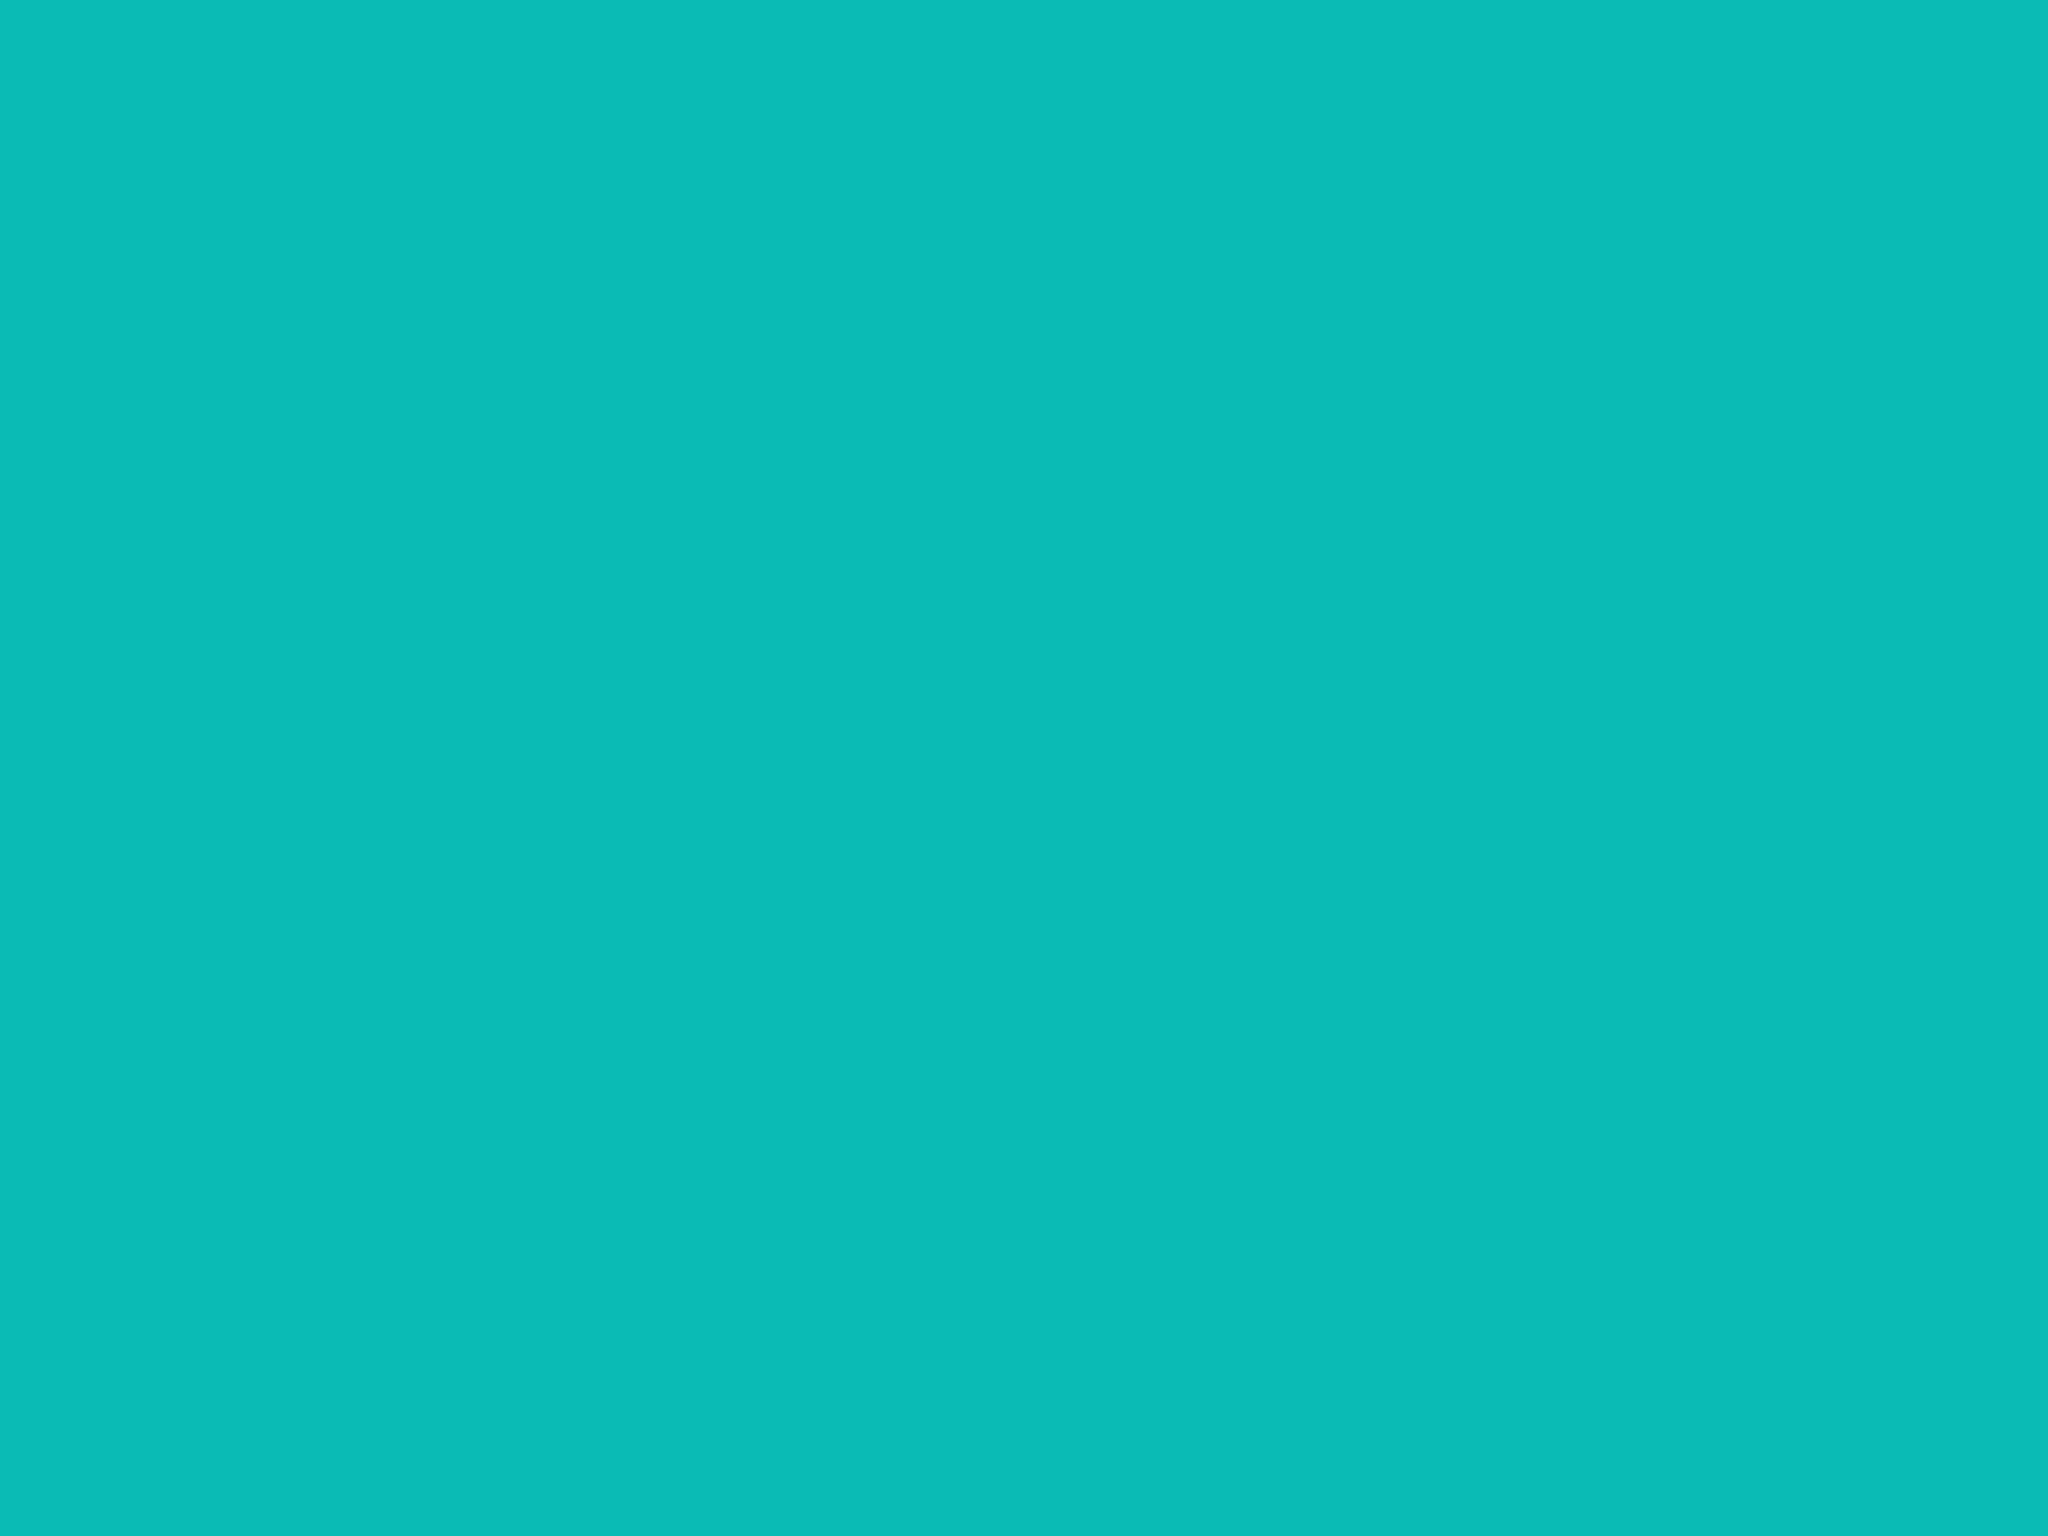 2048x1536 Tiffany Blue Solid Color Background